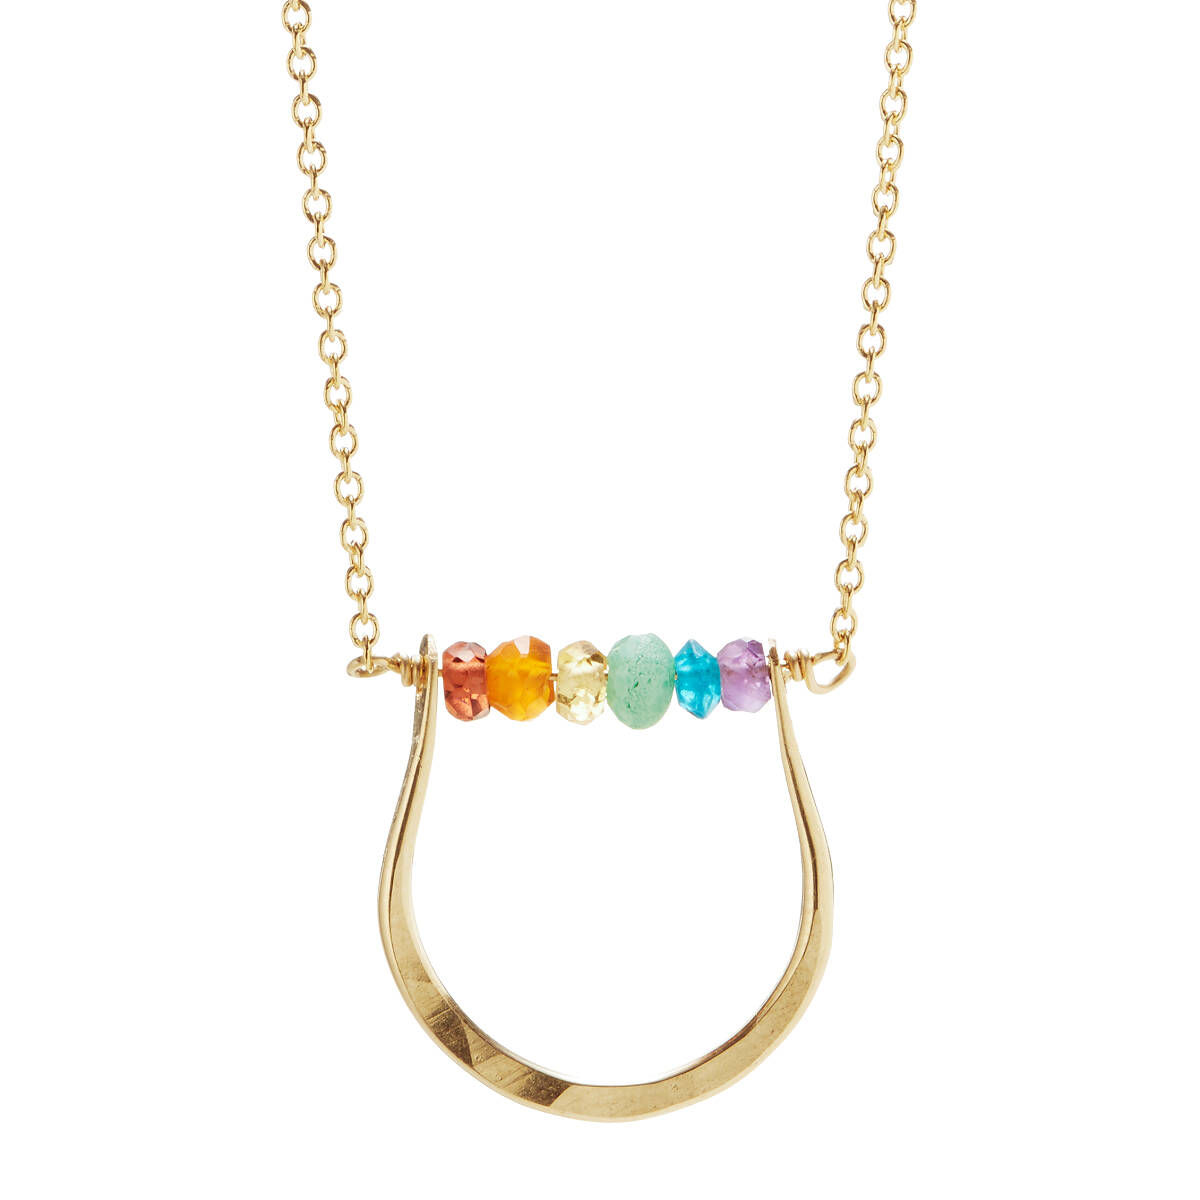 Rainbow of Possibilities Necklace | rainbow charm necklace ...